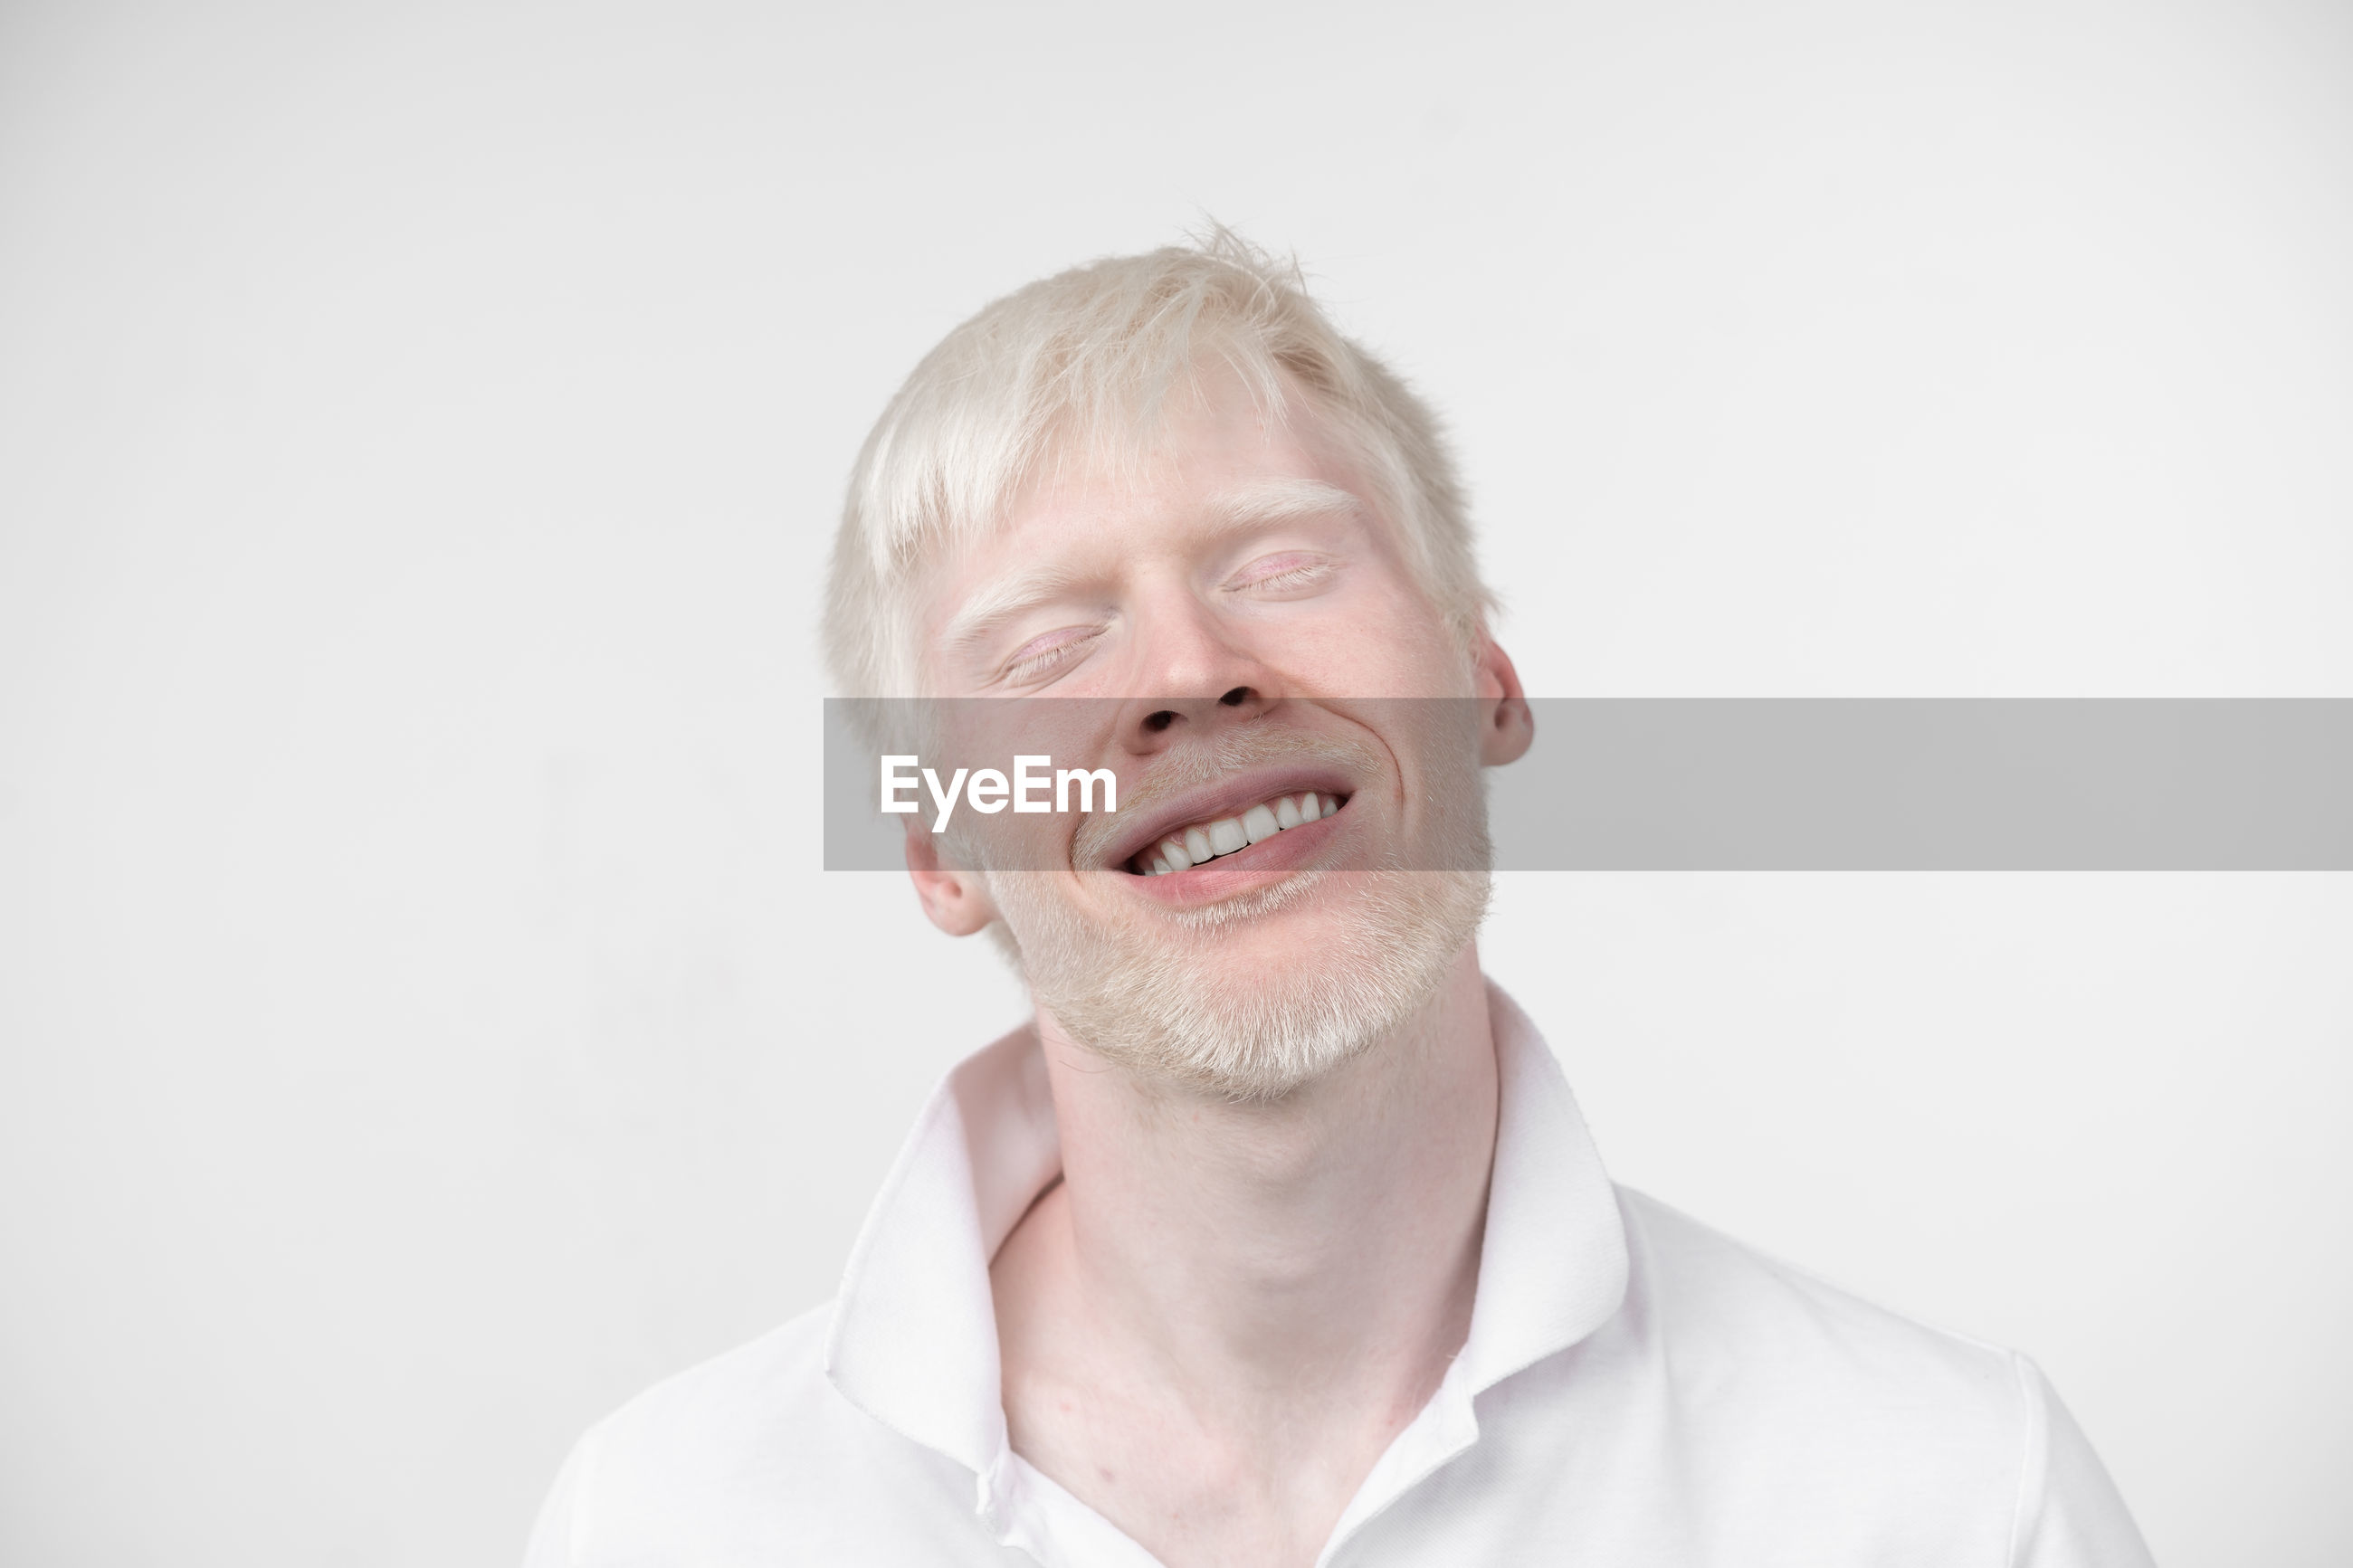 Close-up of smiling man with eyes closed standing against white background